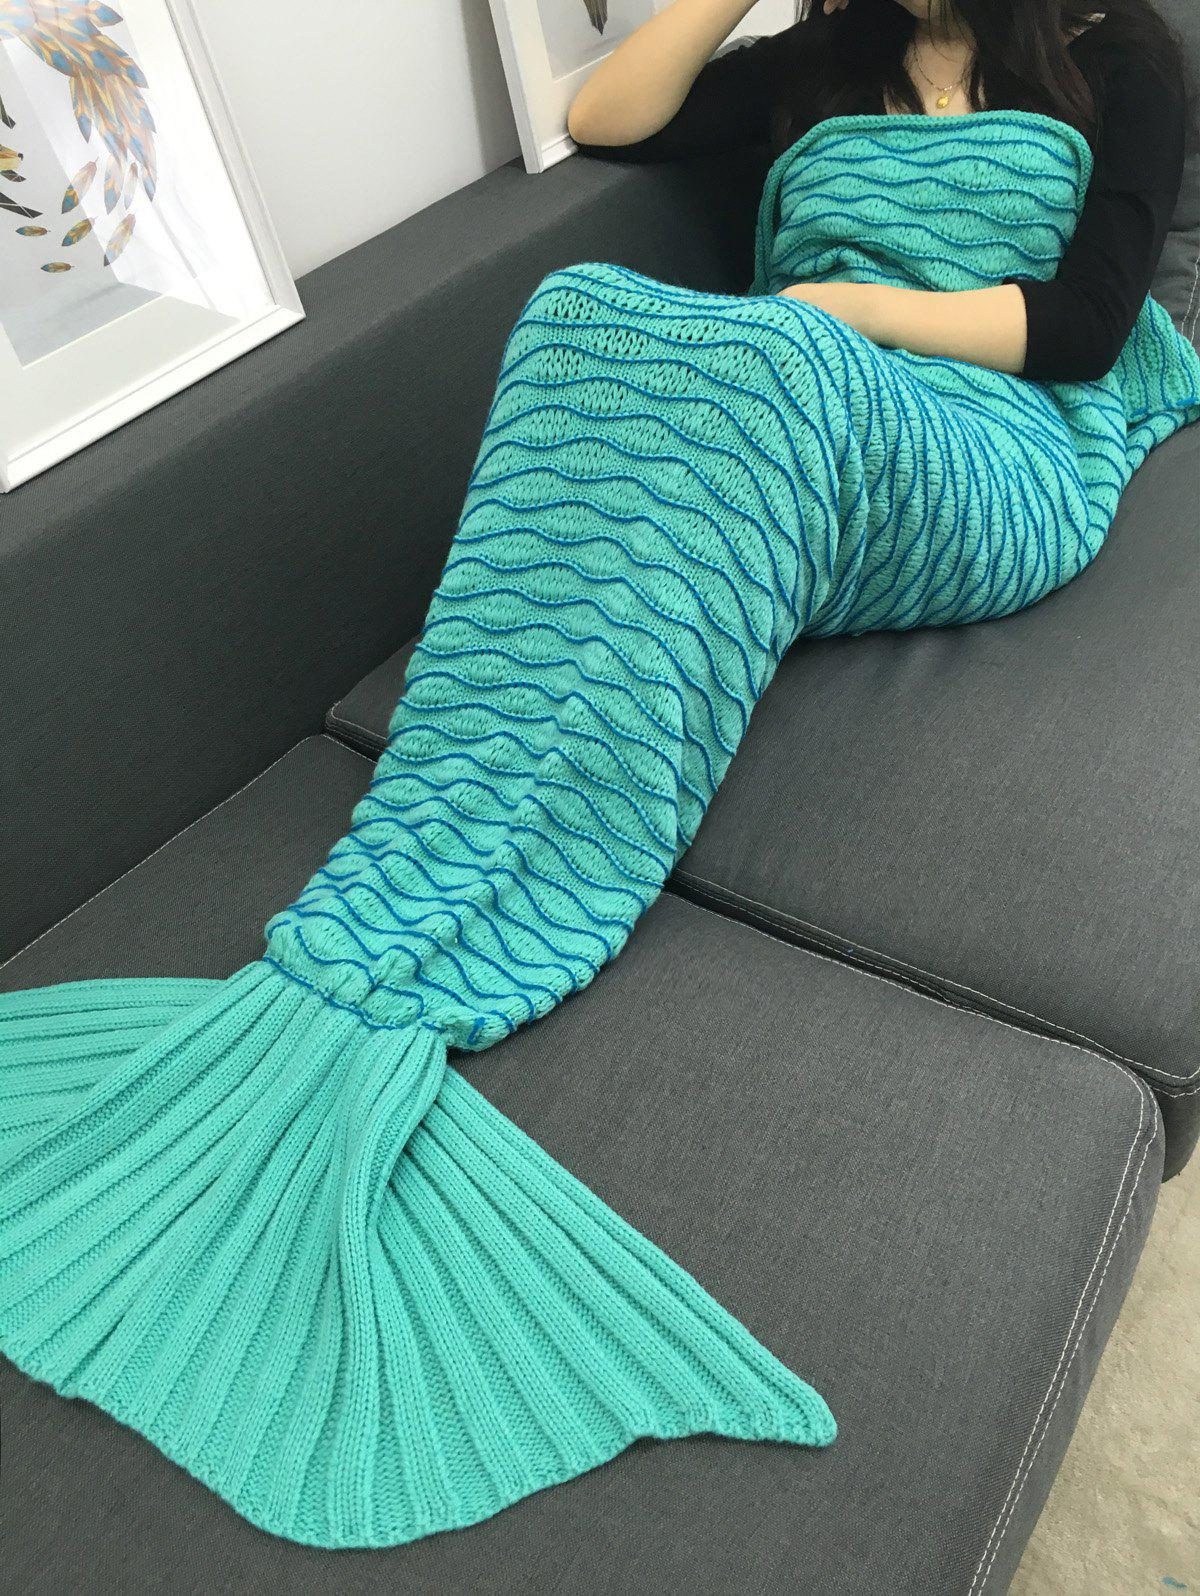 Portable Knitting Wave Stripe Mermaid Tail Design Blanket - LIGHT GREEN